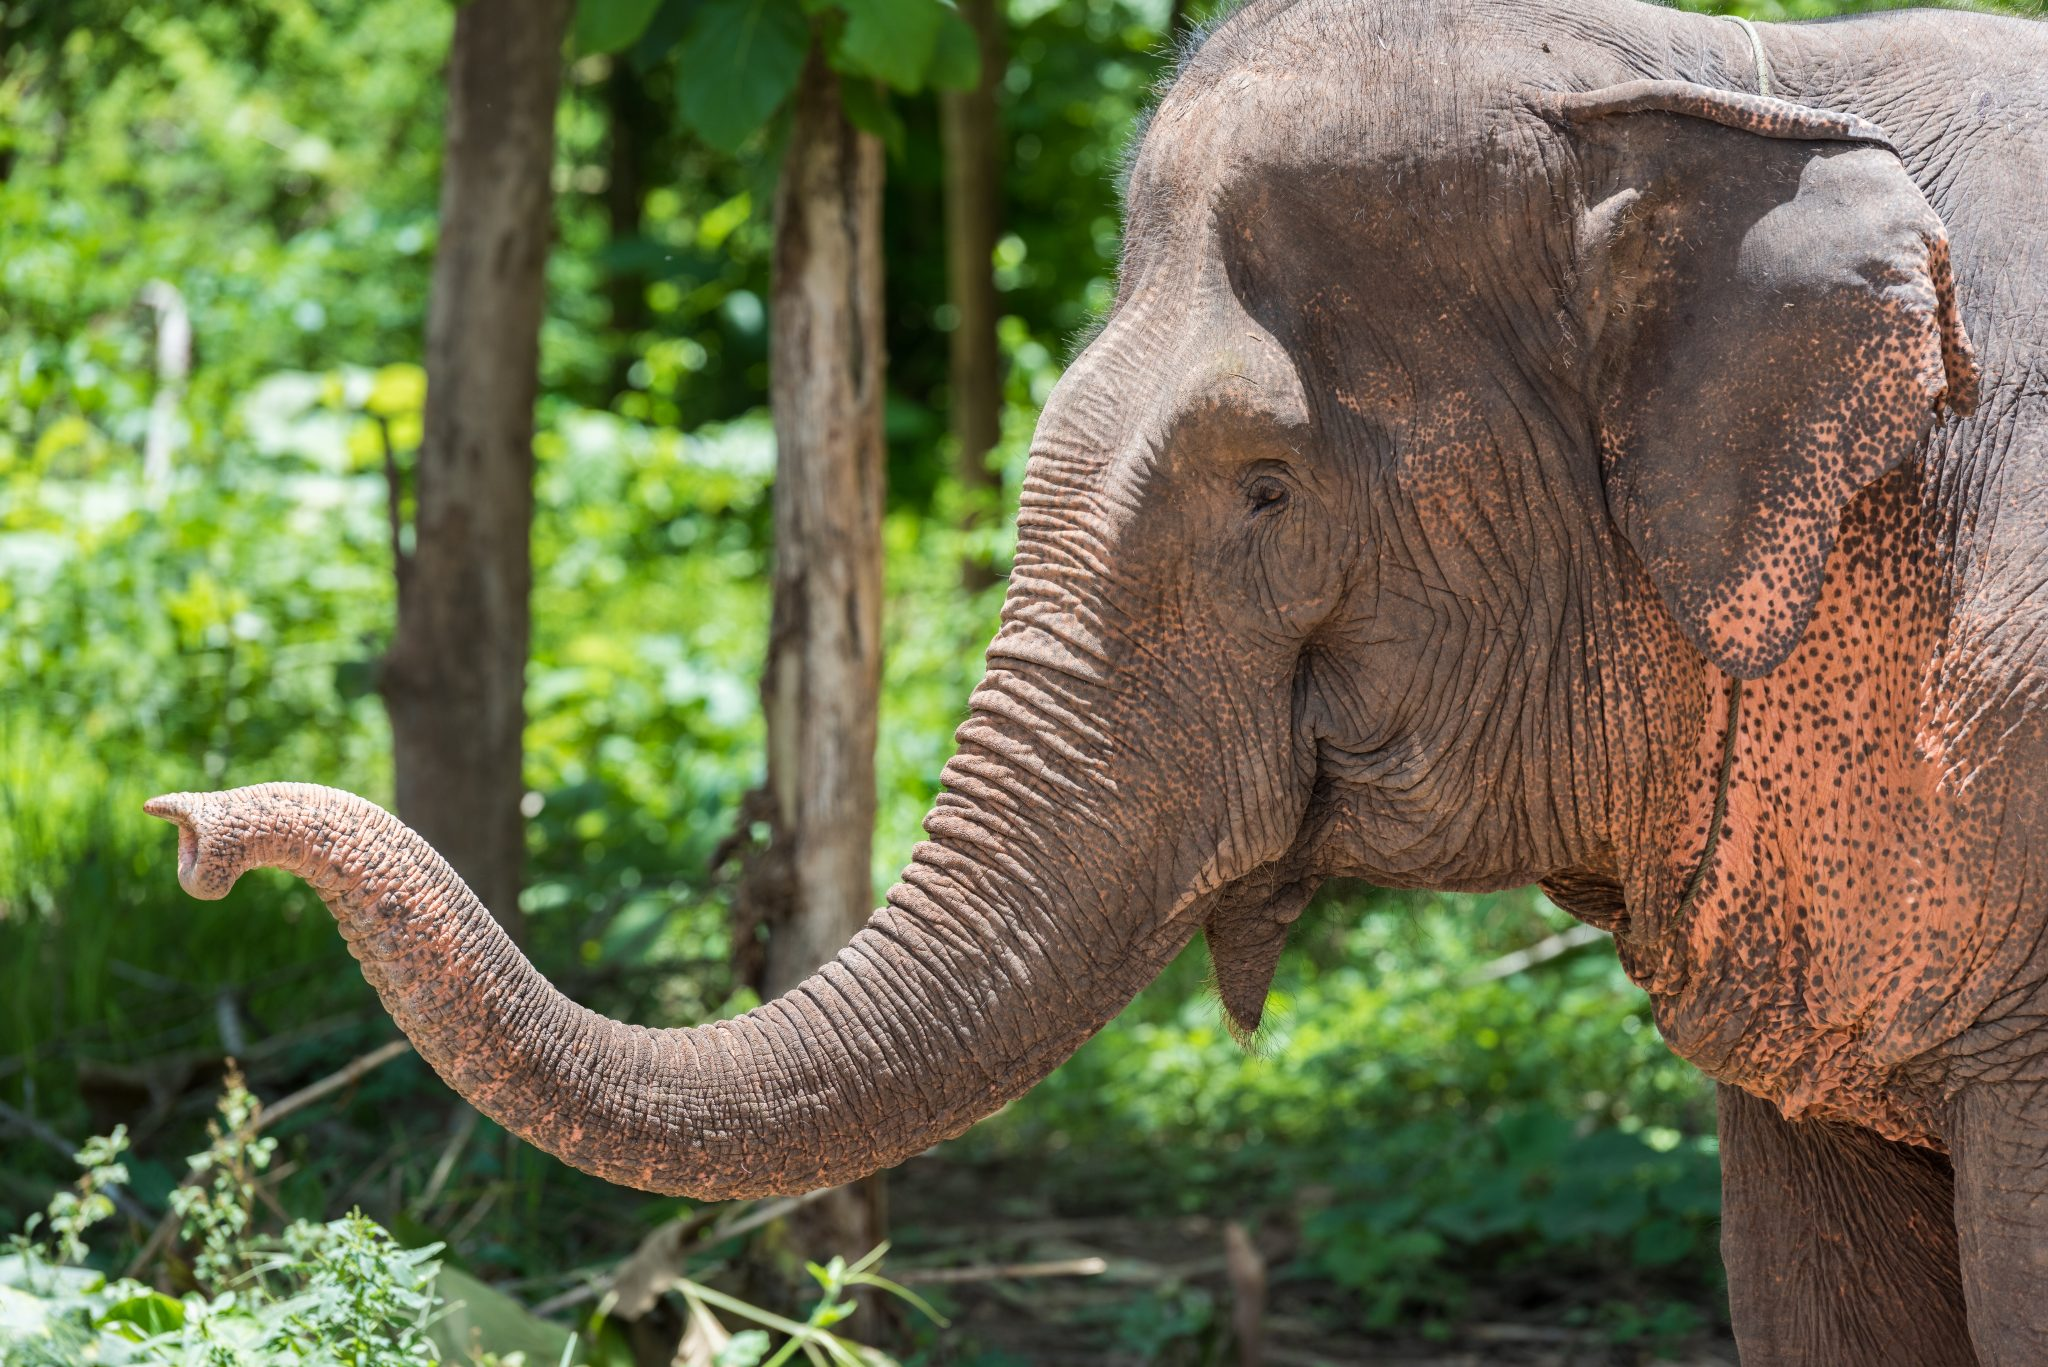 Petition: Tuberculosis Among Captive Elephants is a Threat